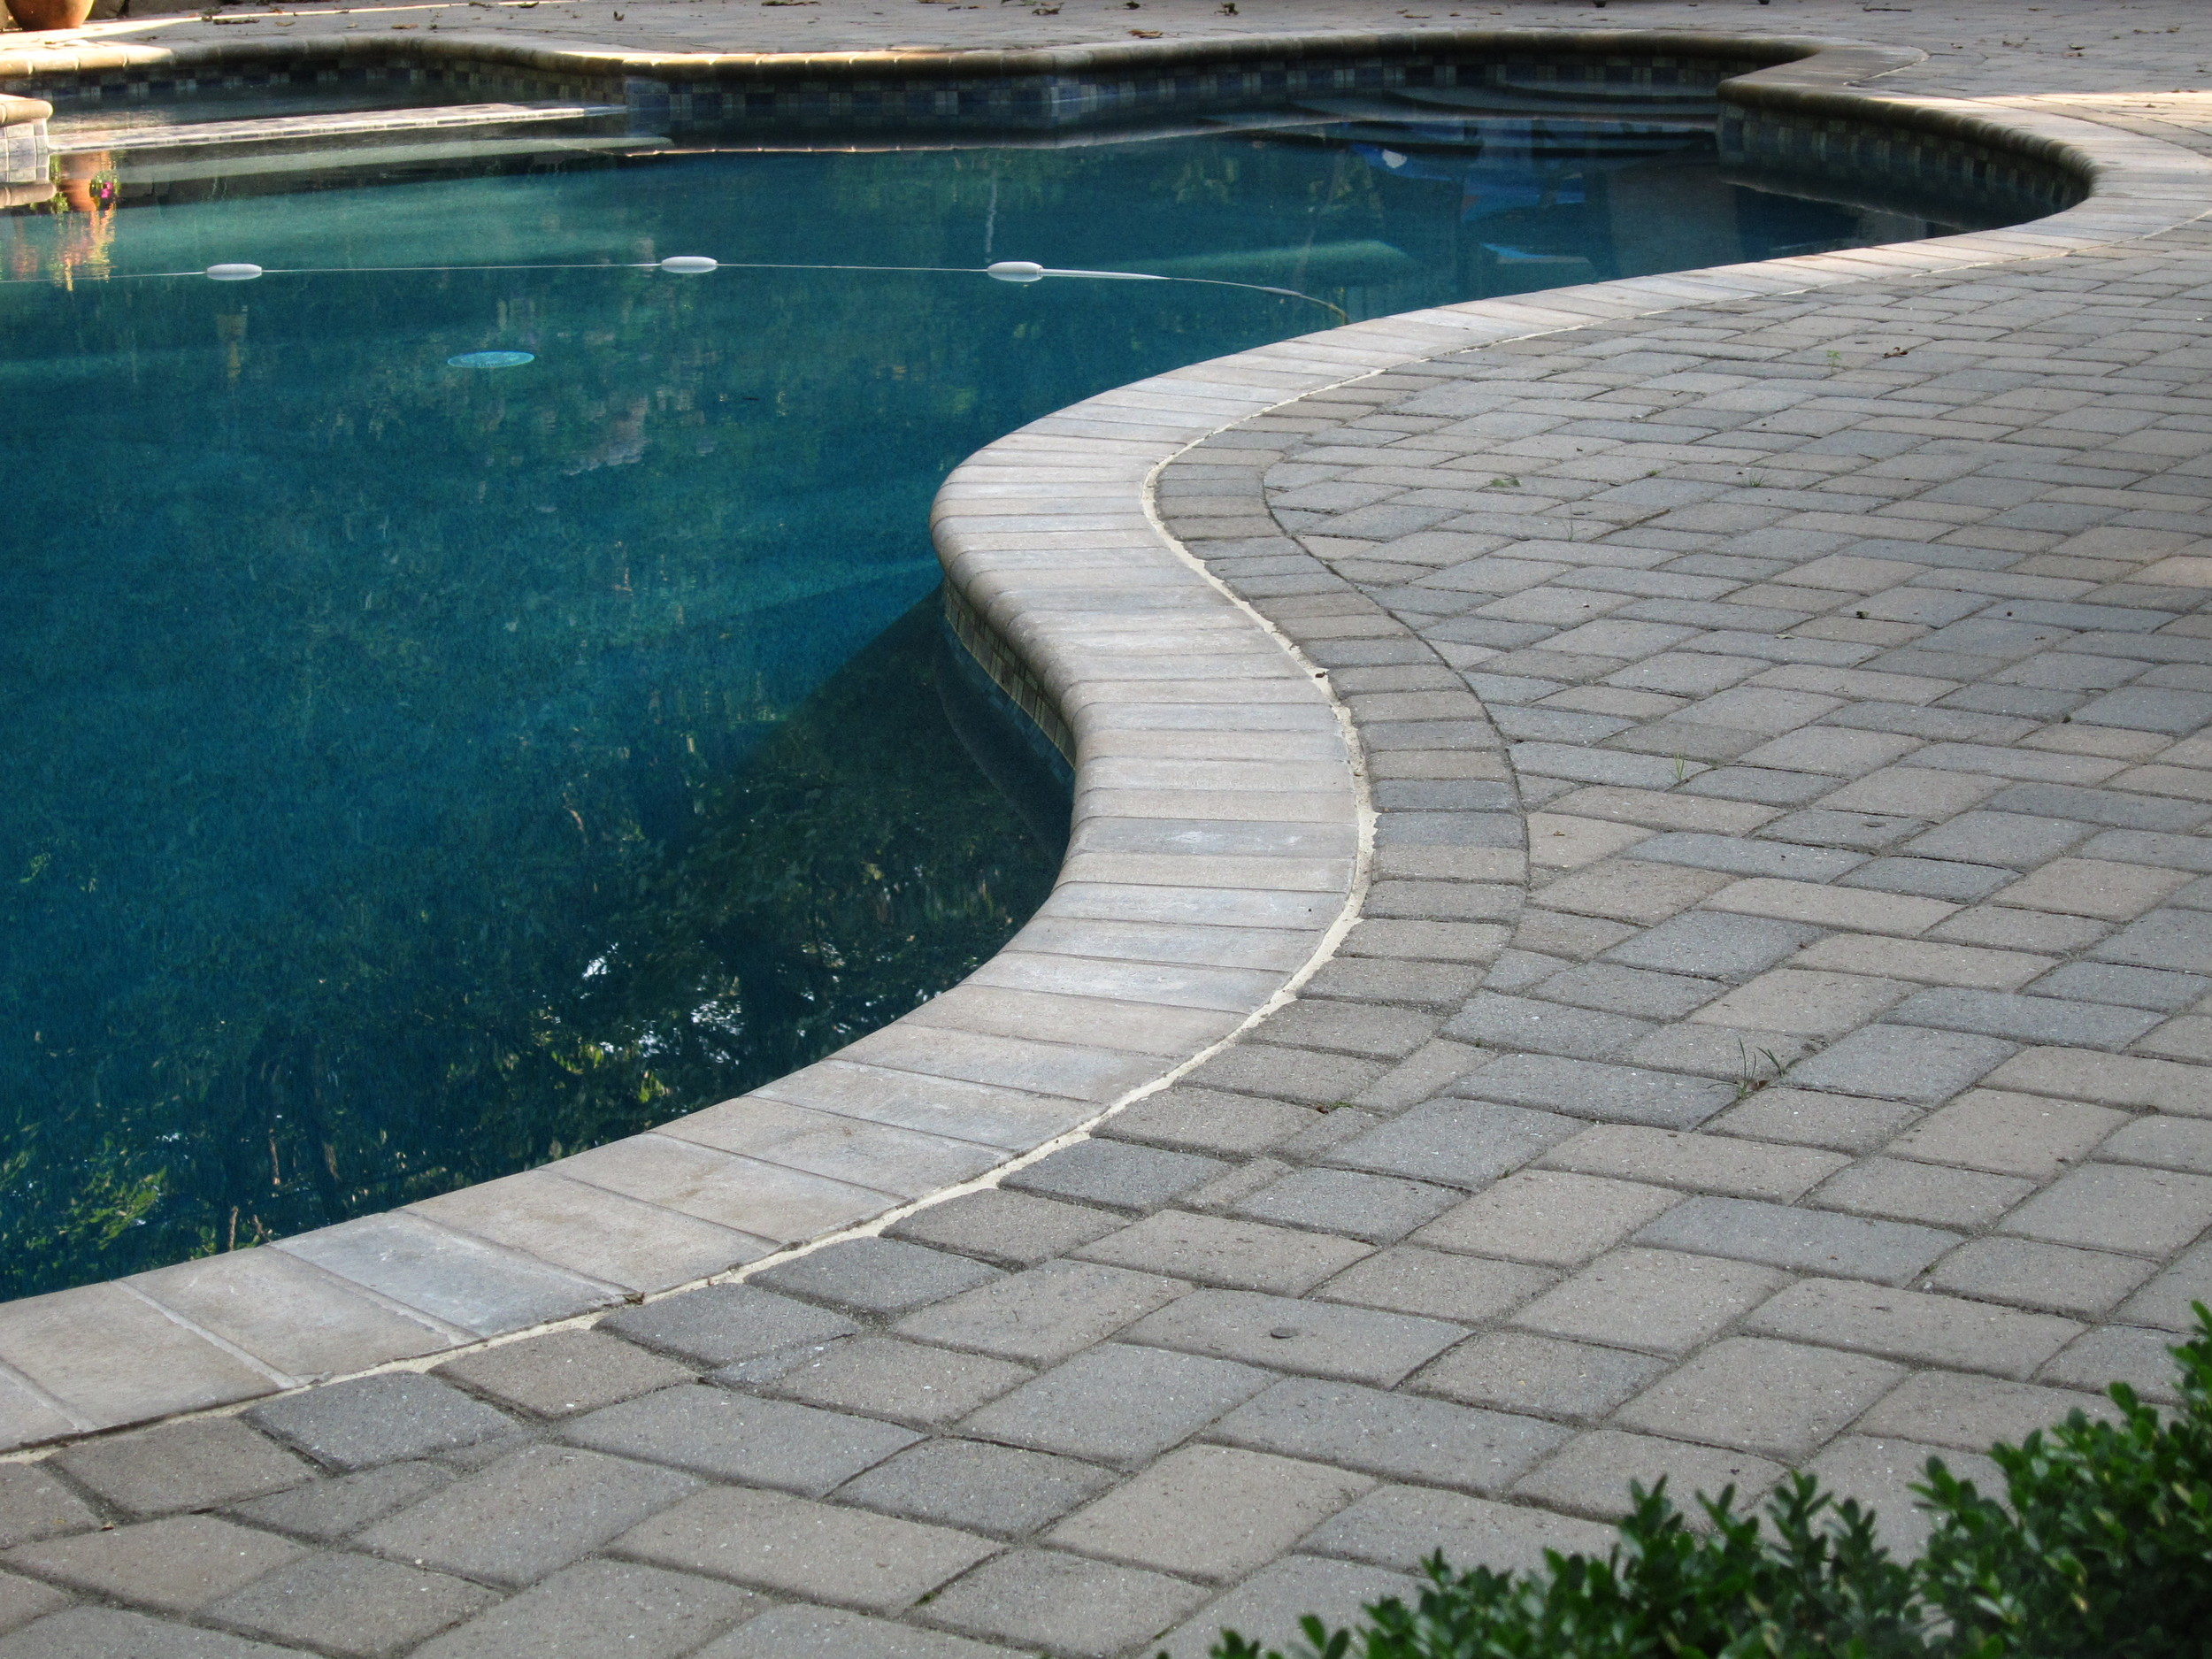 Bullnose Paver in Sandlewood color.